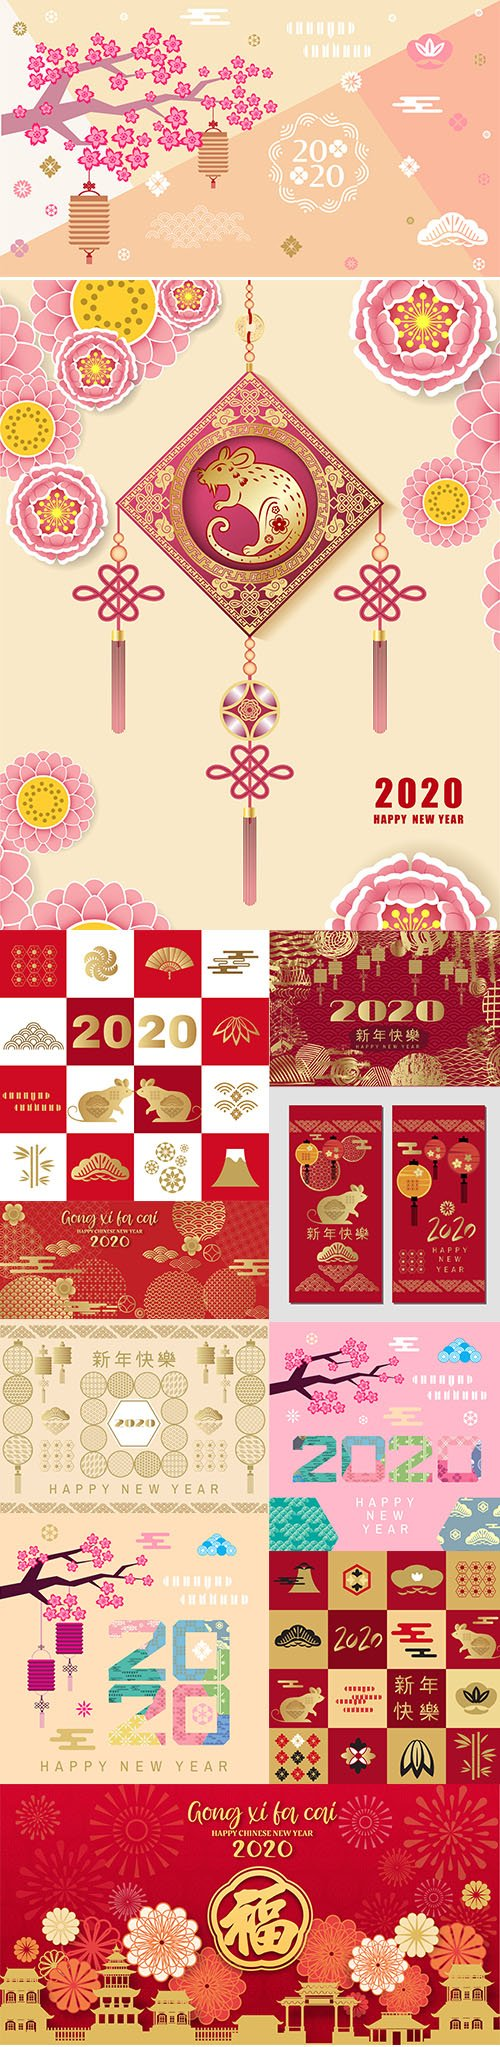 Chinese New Year 2020 Web Banner and Illustration vol3